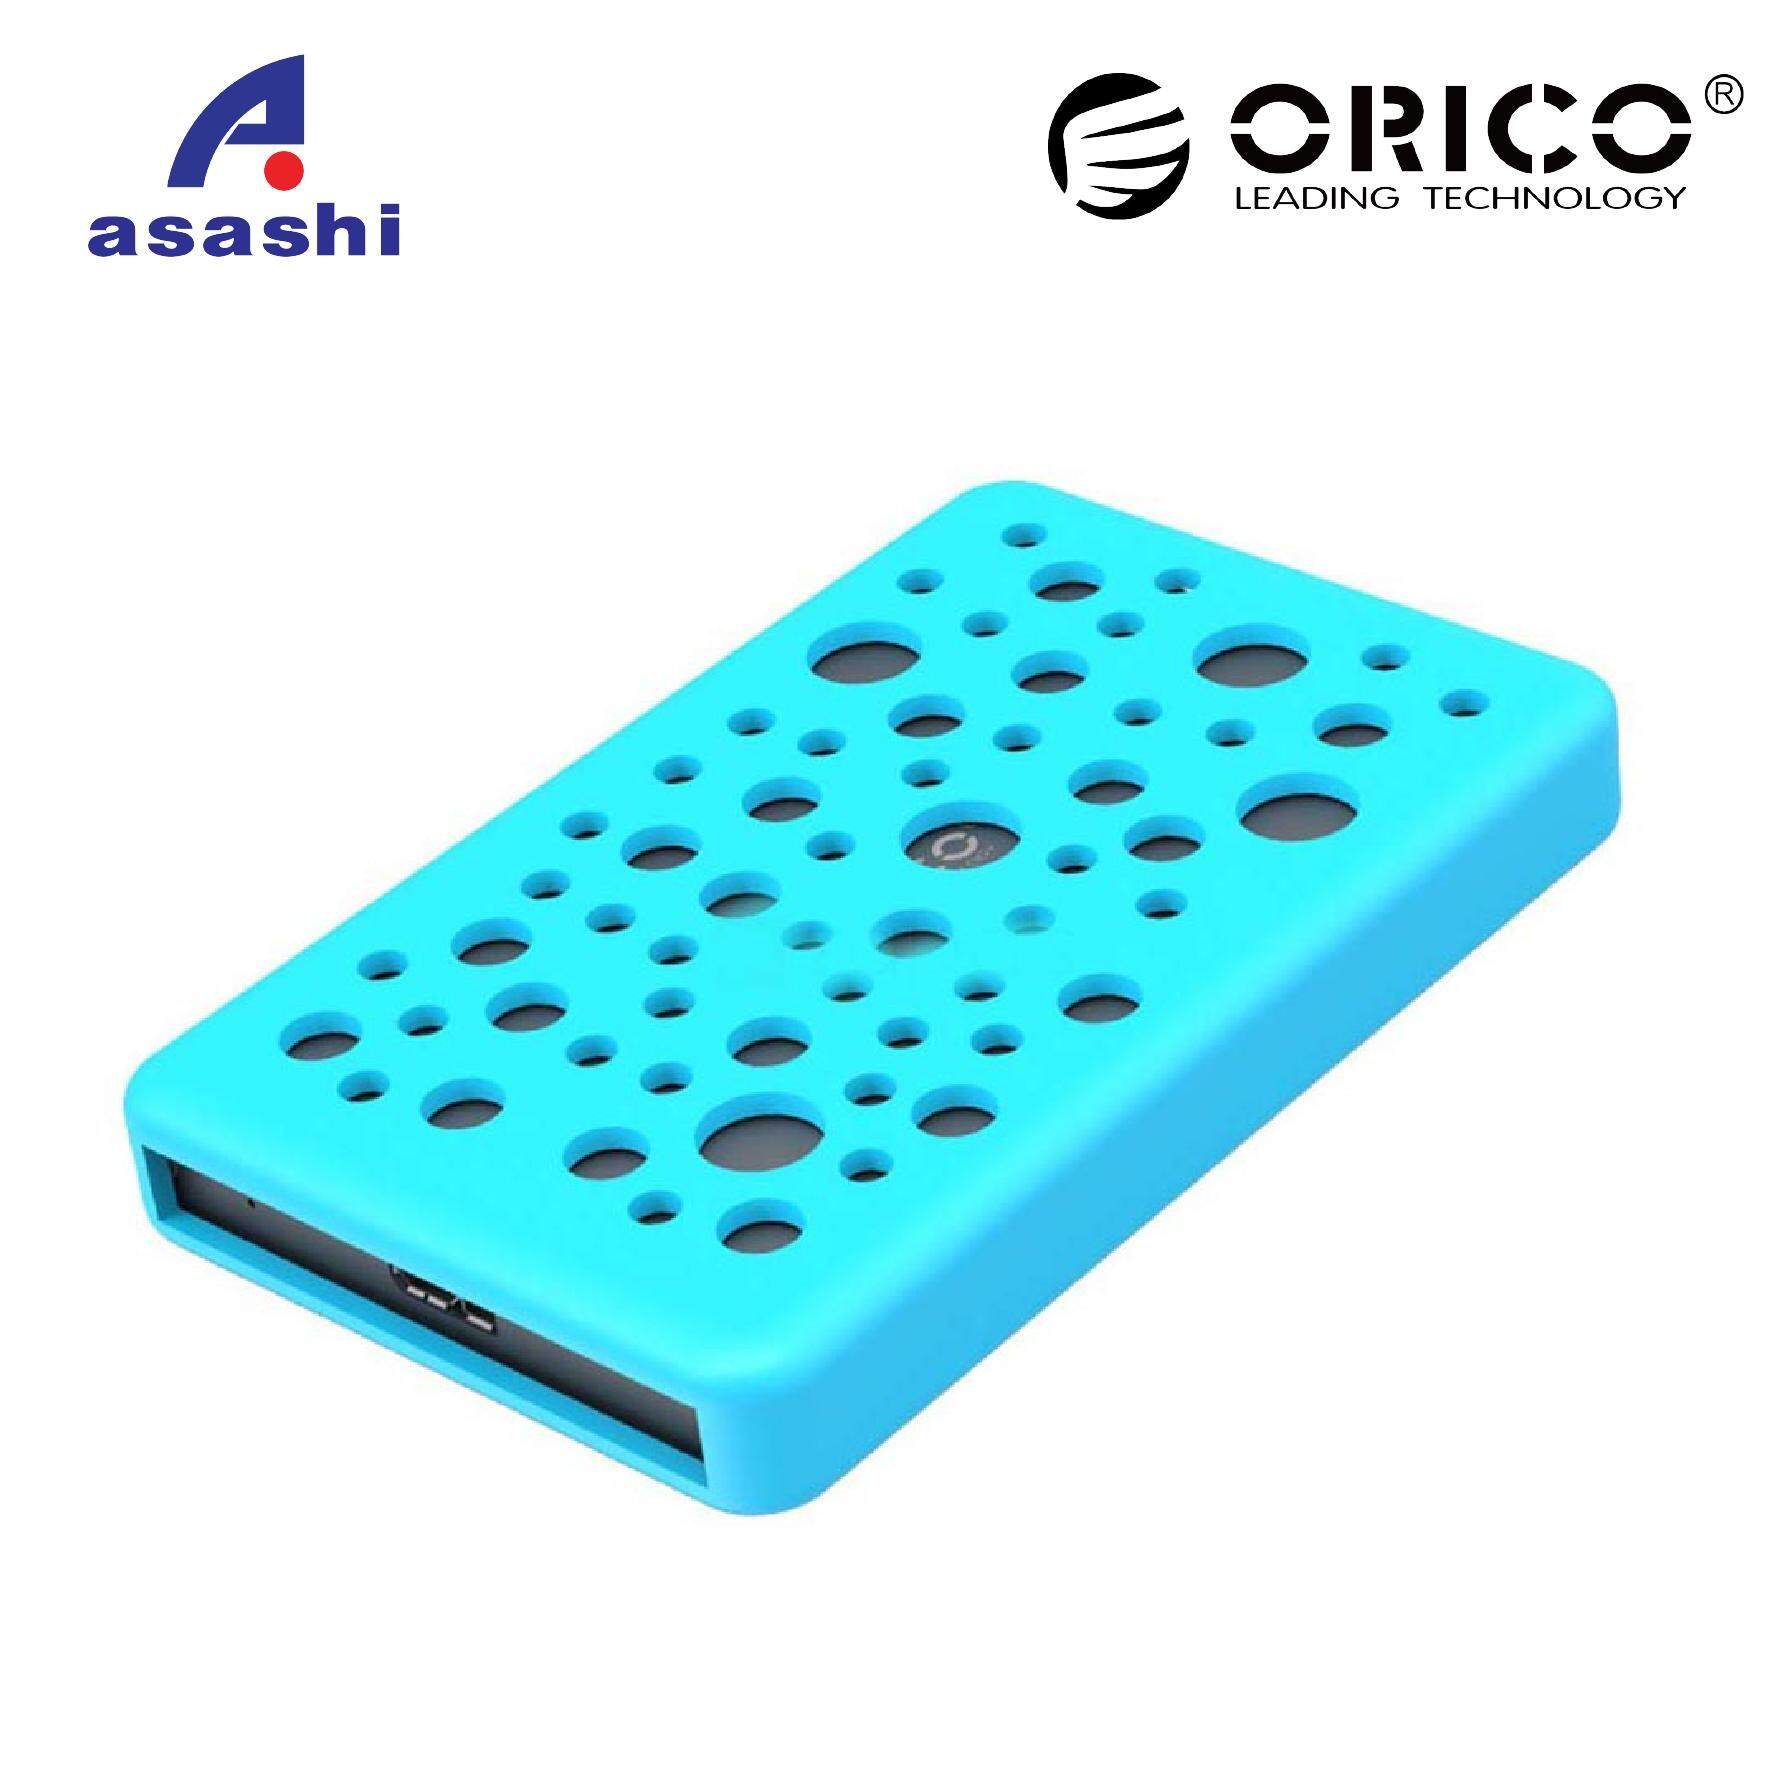 Orico Computers Laptops Storage Price In Malaysia Best 2588us3 Hdd Harddisk Enclosure 25 Inch Portable Super Speed Usb 30 2789u3 External Sata Silicon Cover